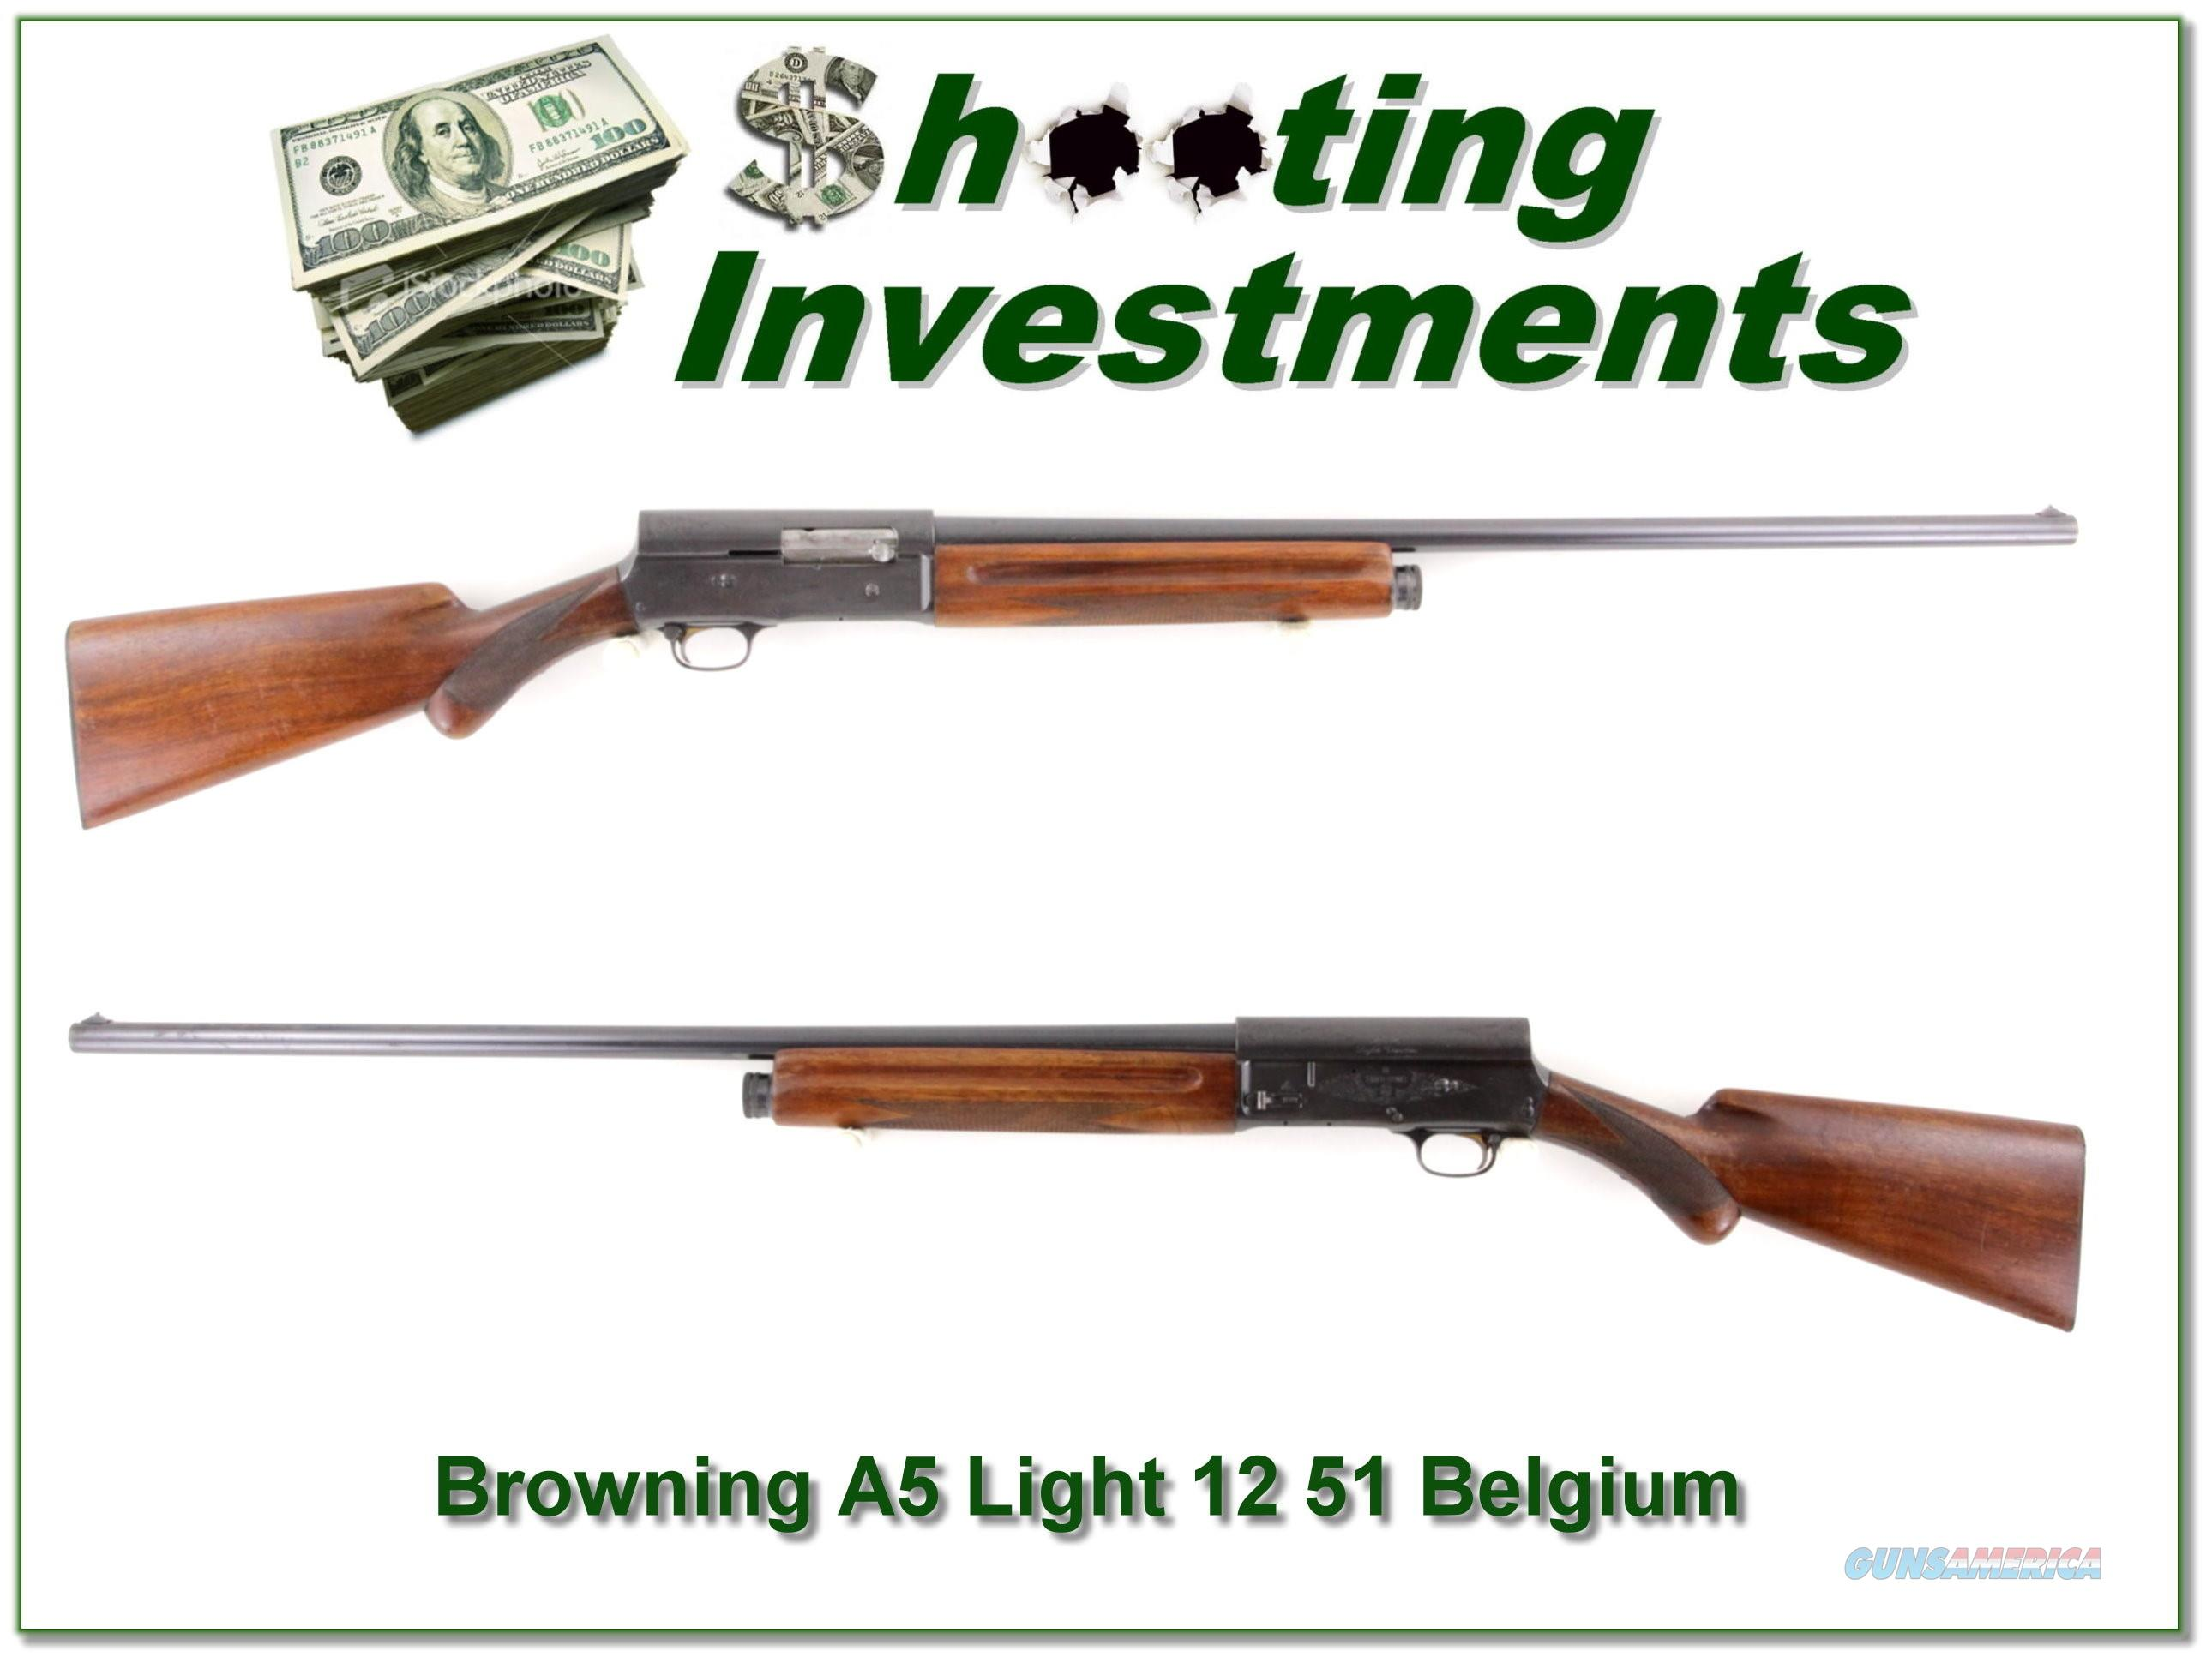 Browning A5 Light 12 51 Belgium all original  Guns > Shotguns > Browning Shotguns > Autoloaders > Hunting